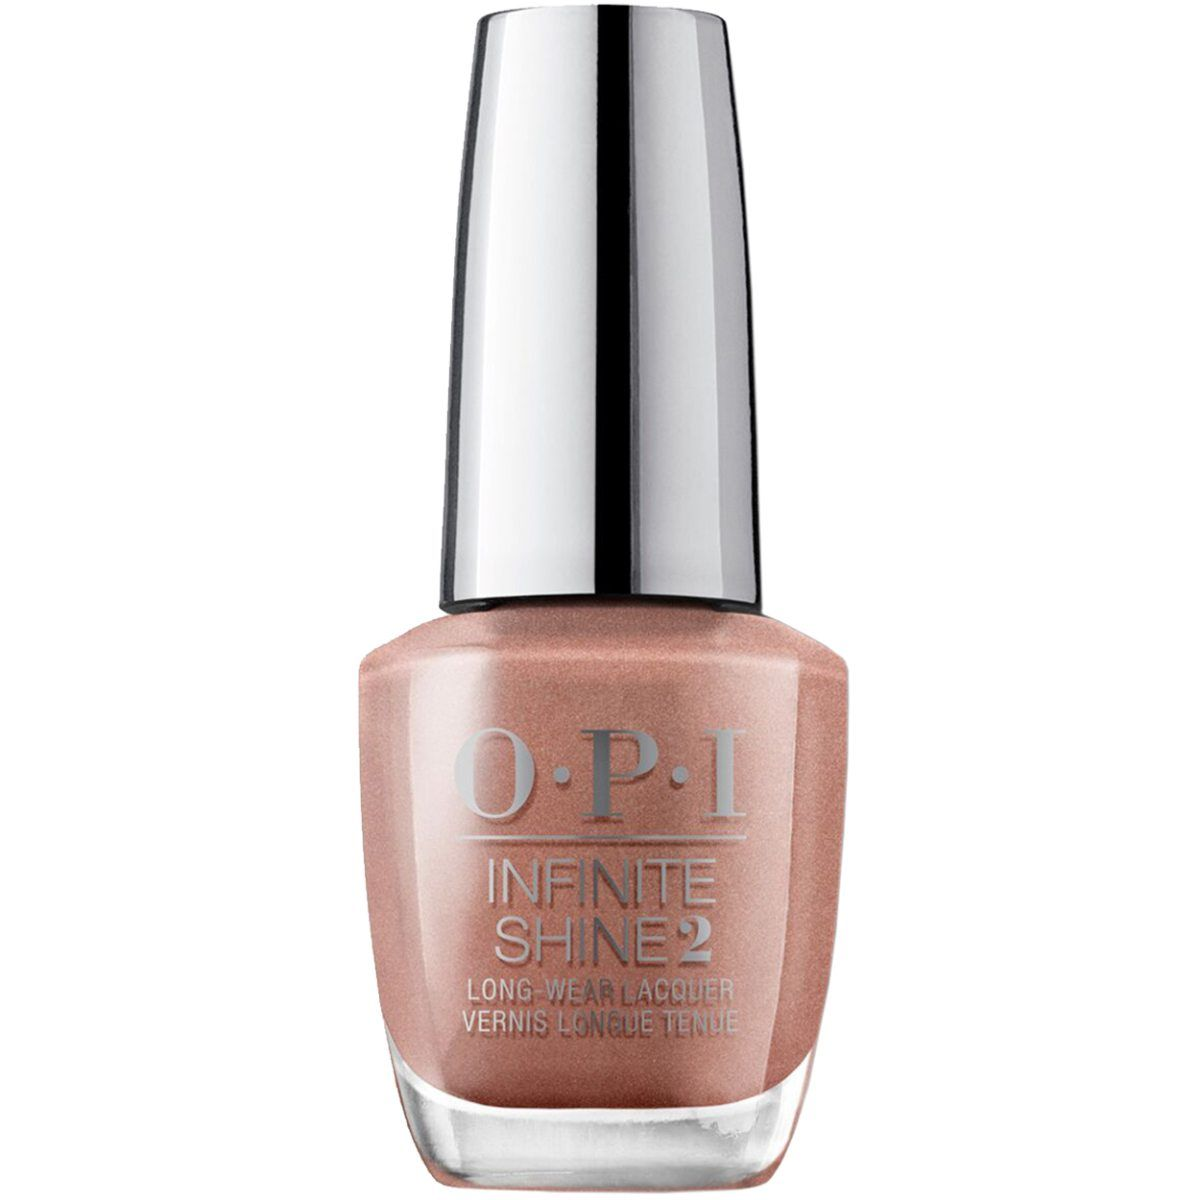 OPI Infinite Shine Made it to The 7 Hill